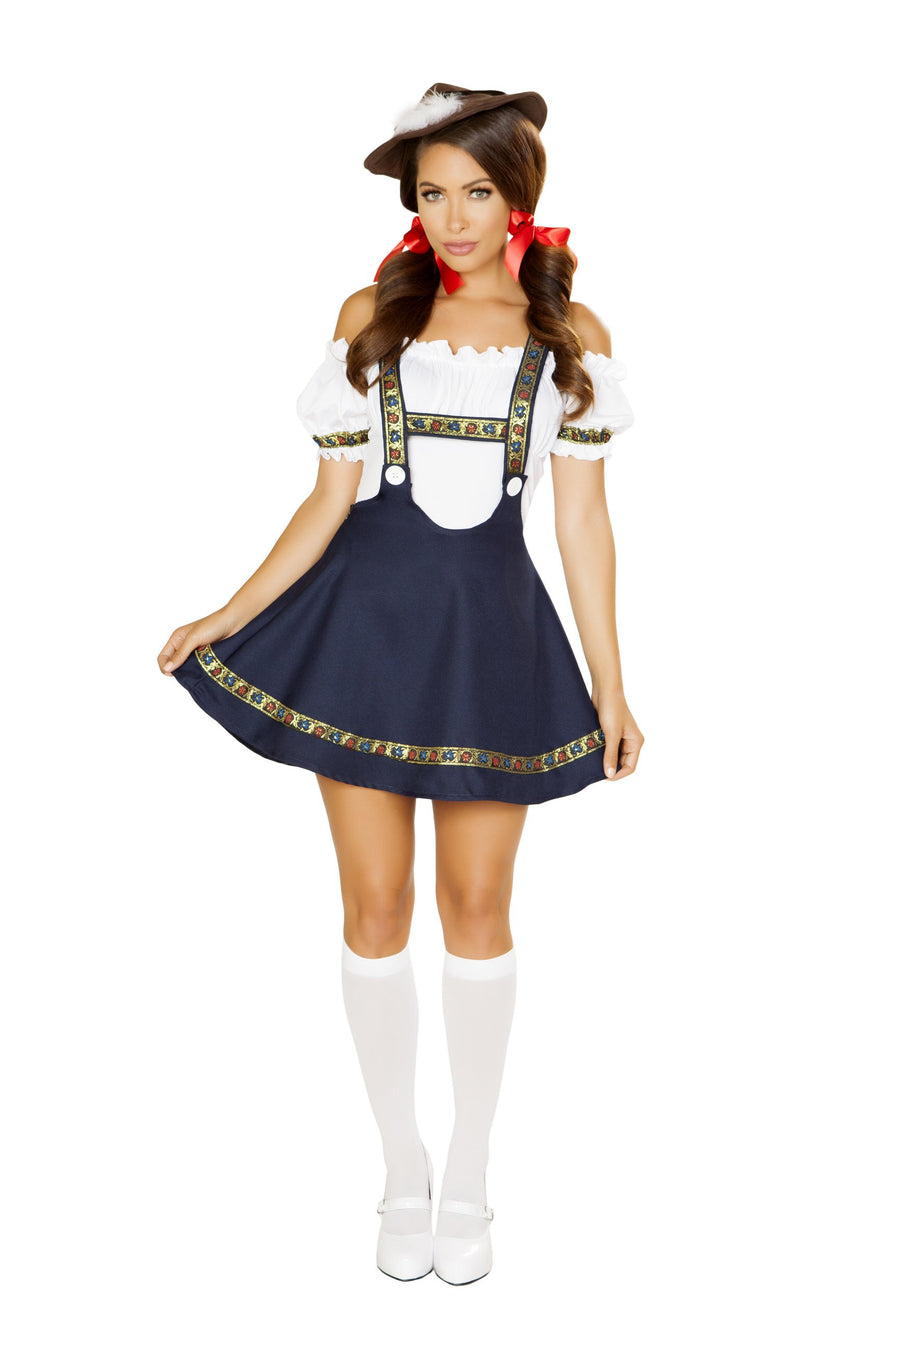 4884 - Roma Costume 3pc Bavarian Beauty Serving Wench